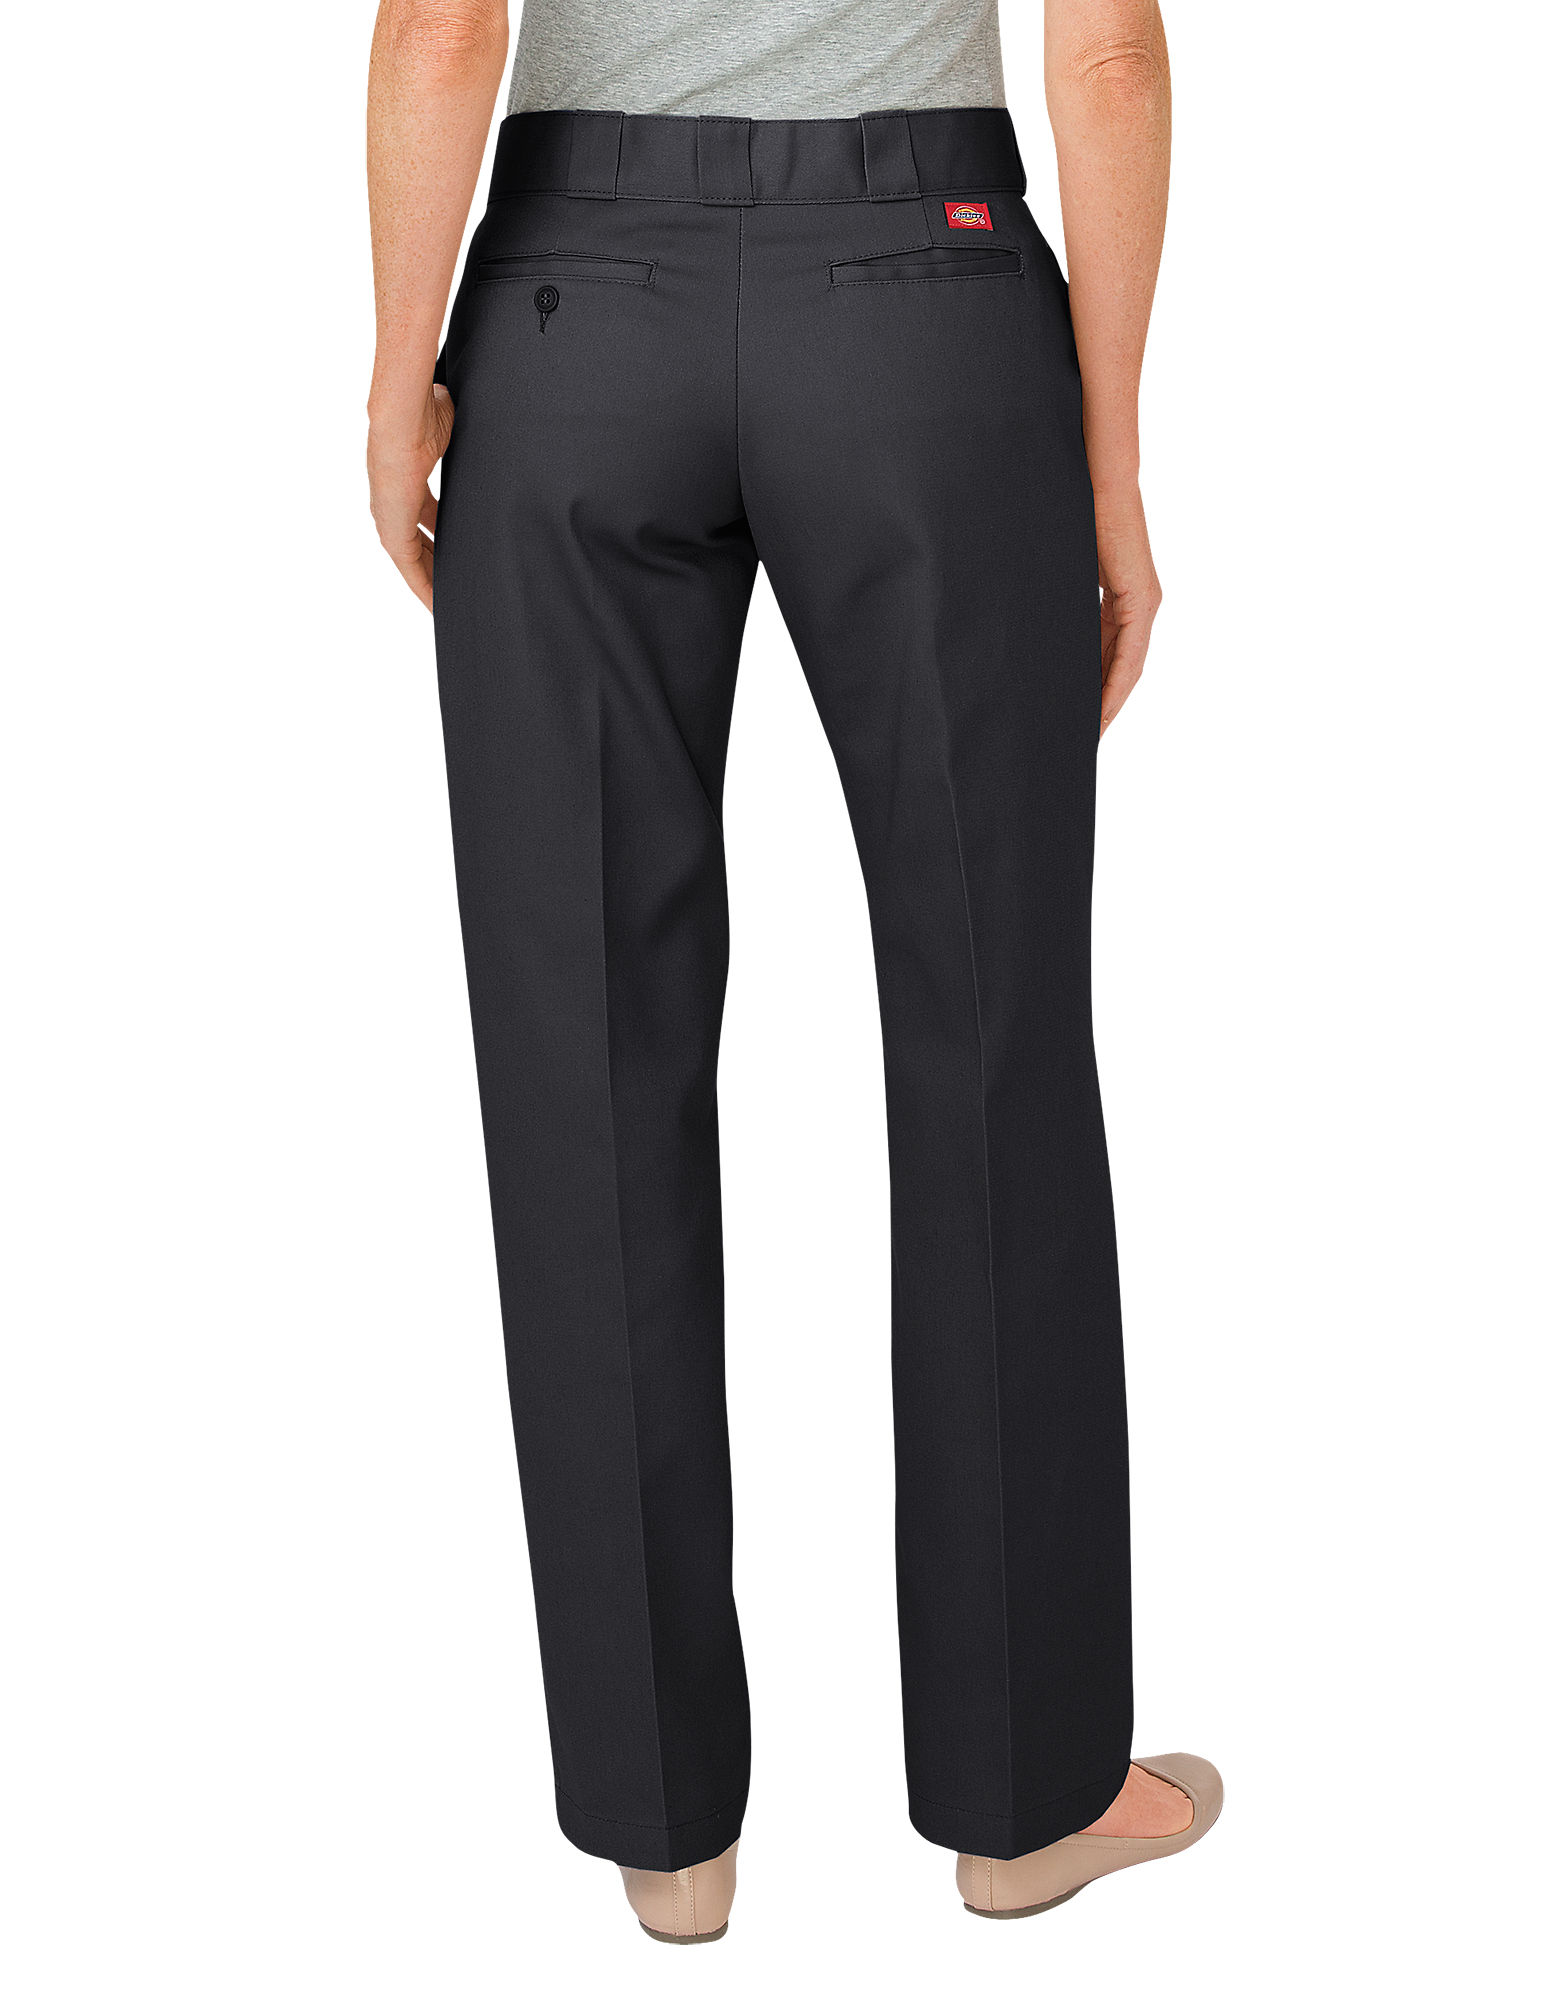 dickies womens pants photo - 2